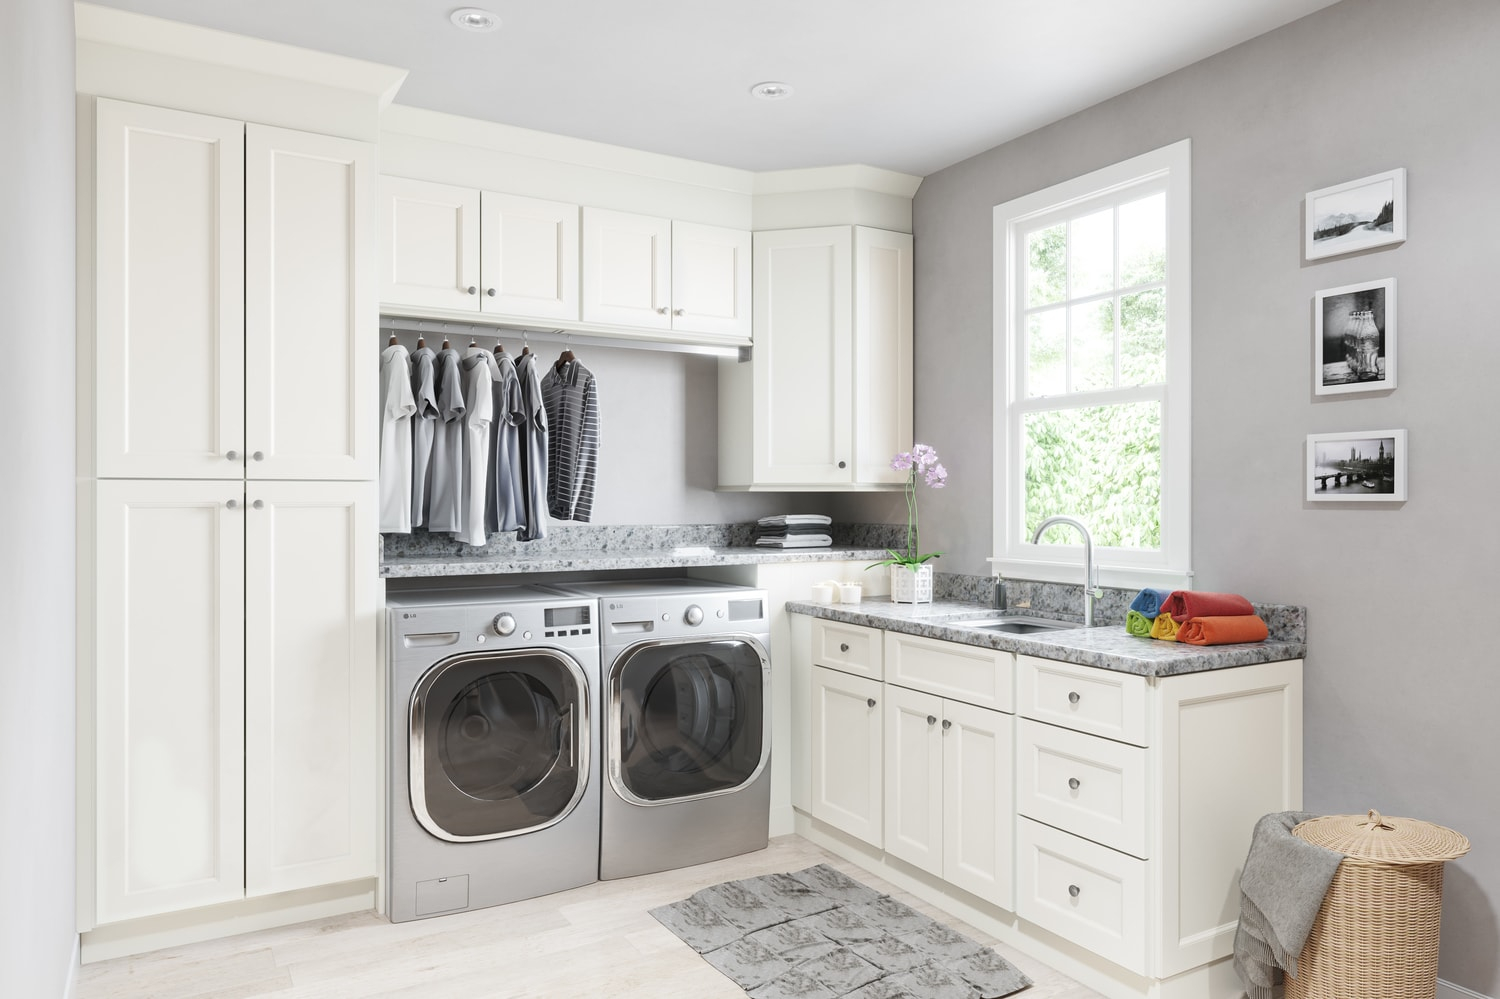 High Quality Laundry Room Cabinets - Willow Lane Cabinetry on Laundry Room Cabinets  id=65732